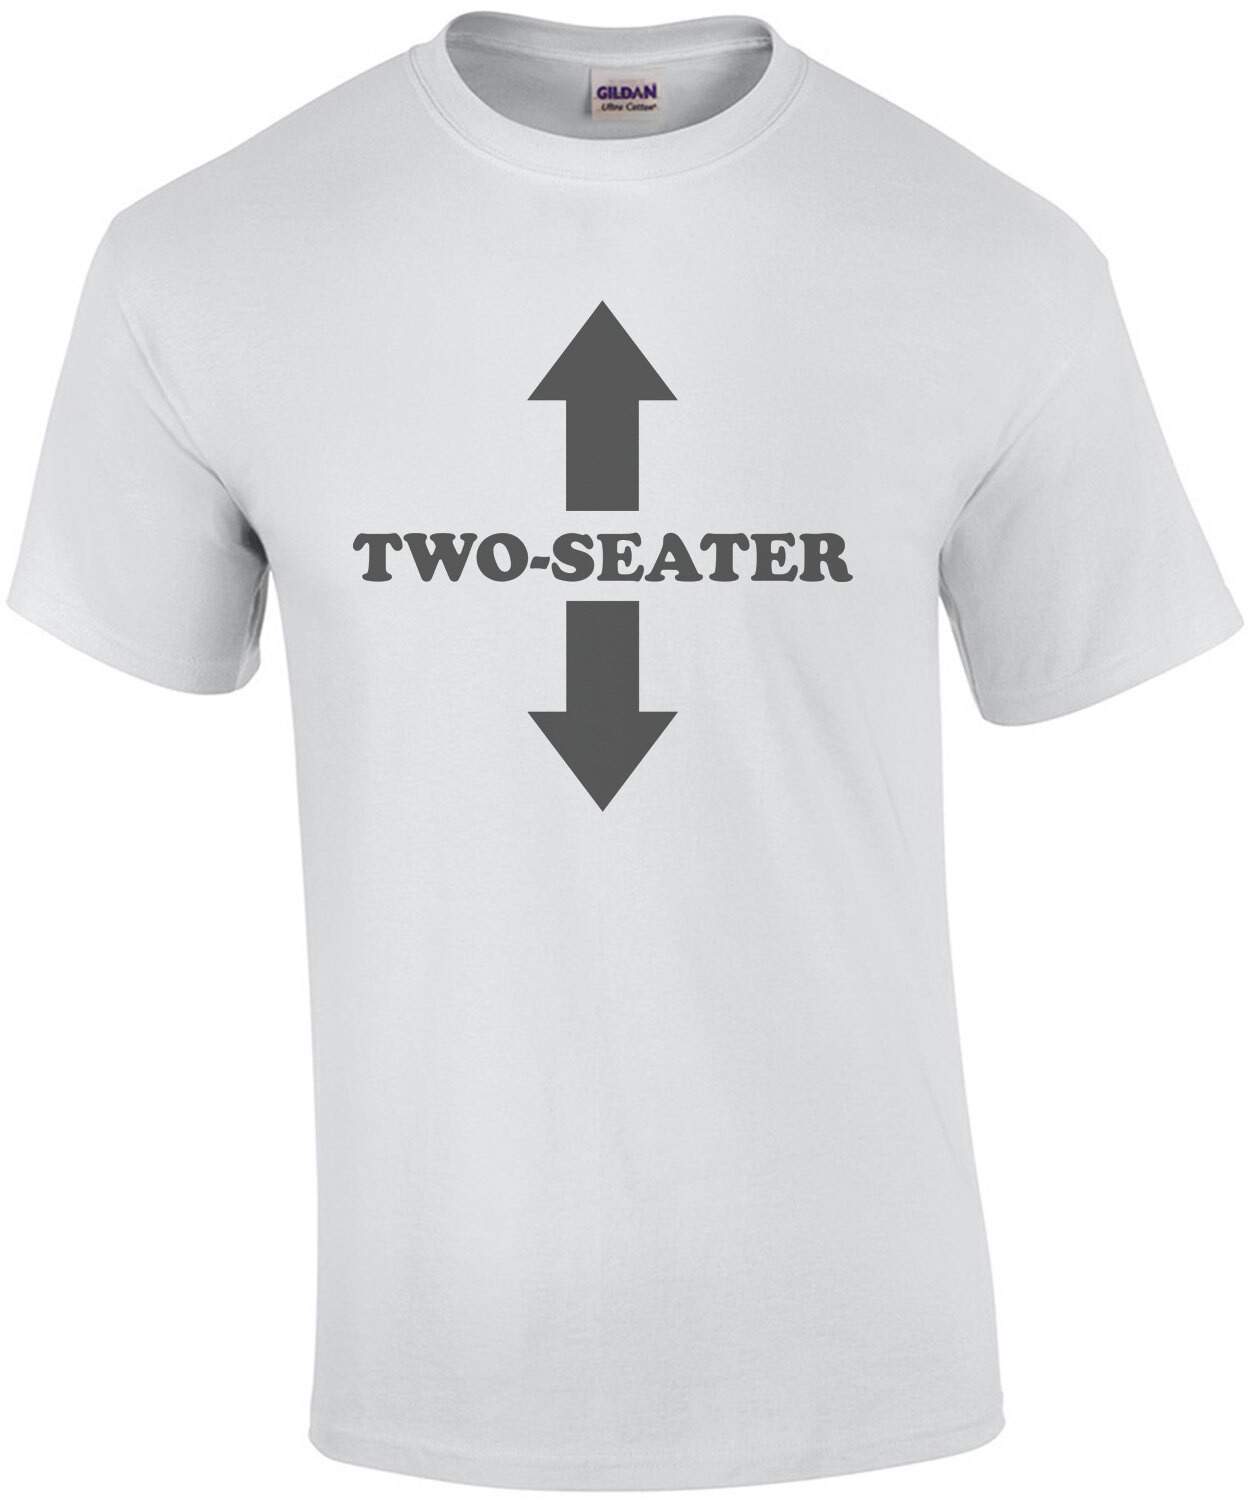 Two Seater Funny Sexual Shirt